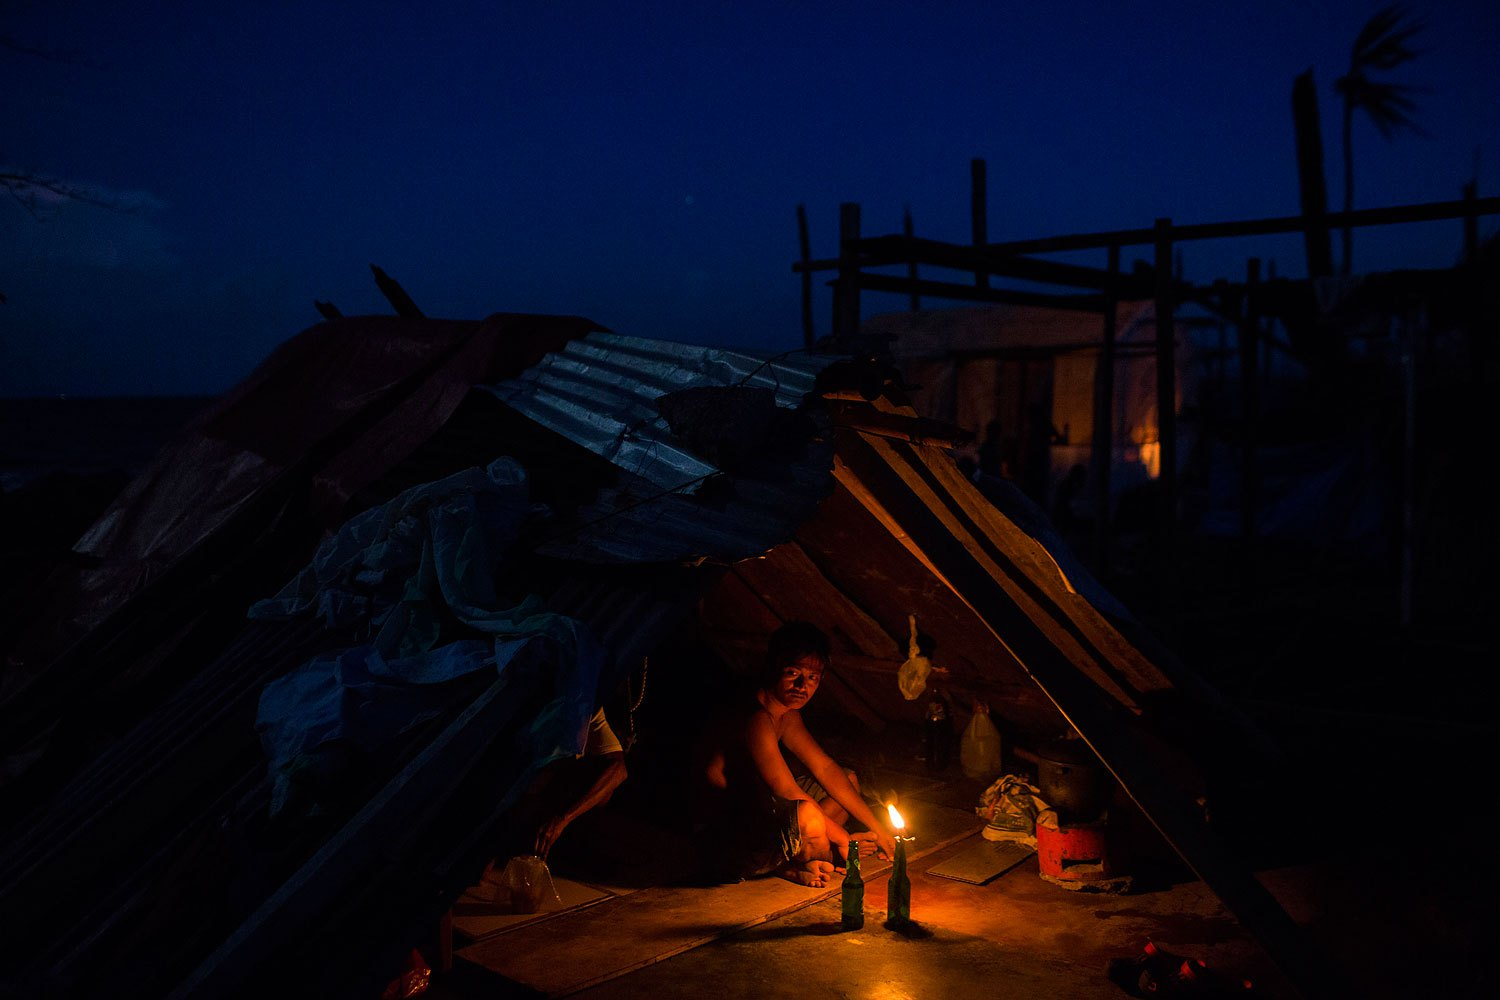 A man who's home was destroyed by Typhoon Haiyan sits by a candle light in the rubble of his home in Tanuan, Philippines on November 15, 2013.